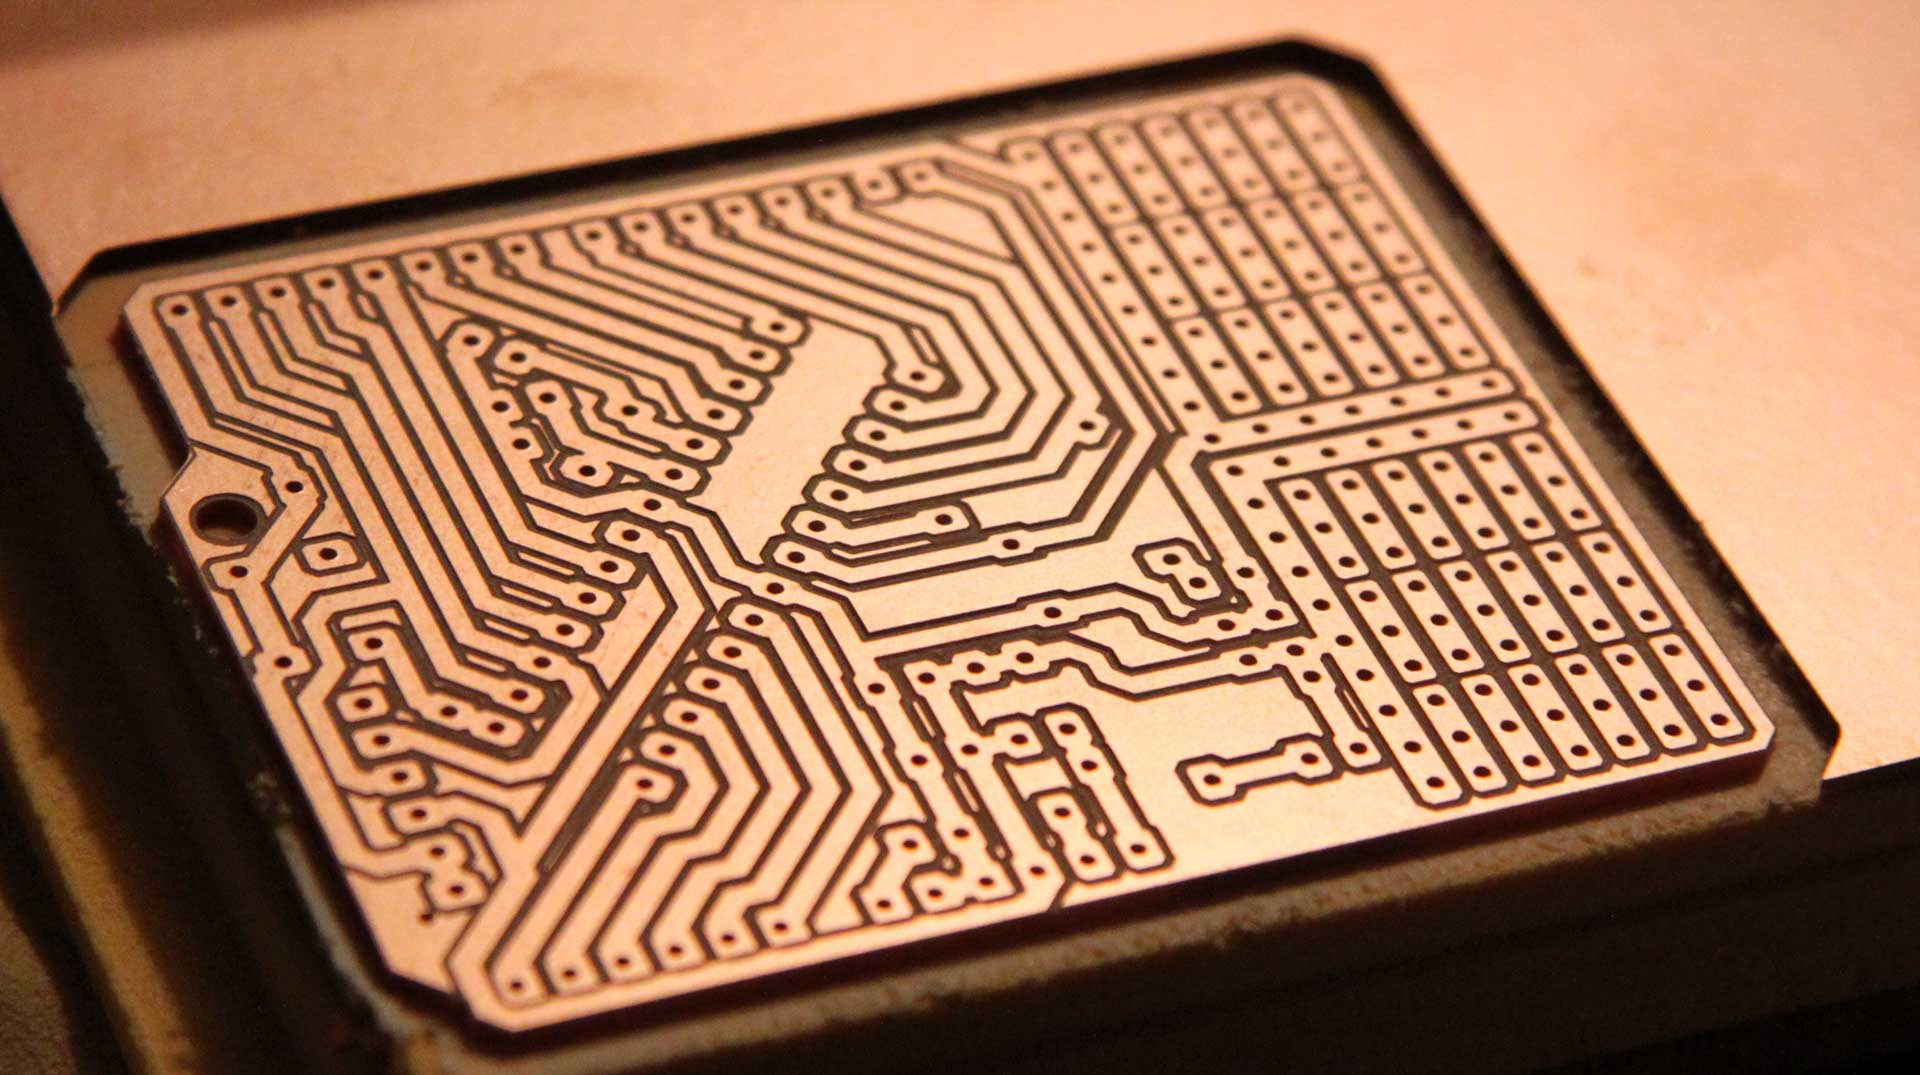 Prototyping_PCBs_SH_MP_image2.jpg